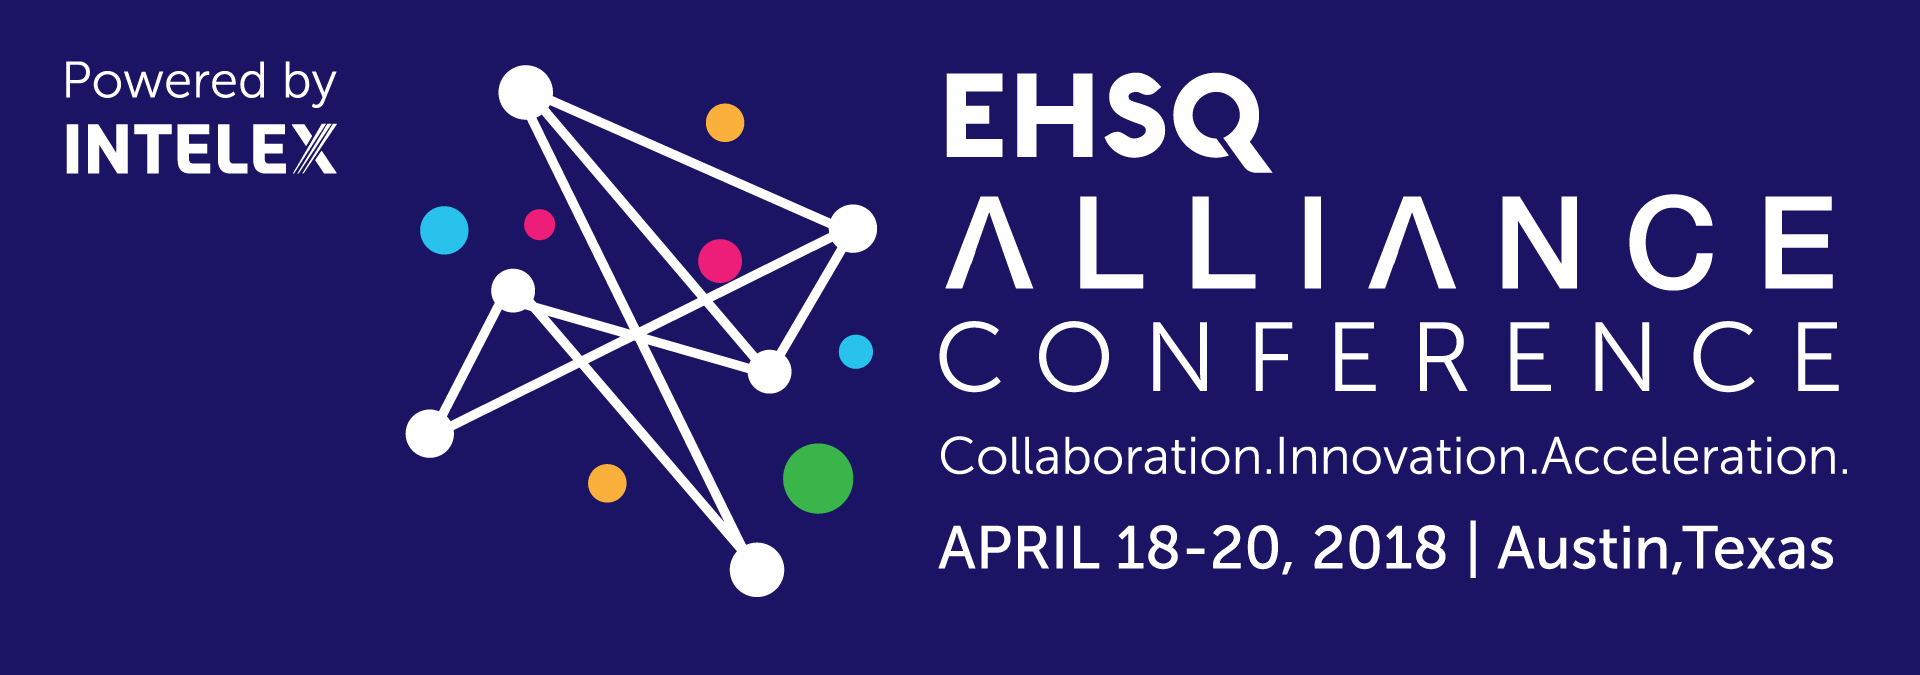 EHSQ Alliance Conference